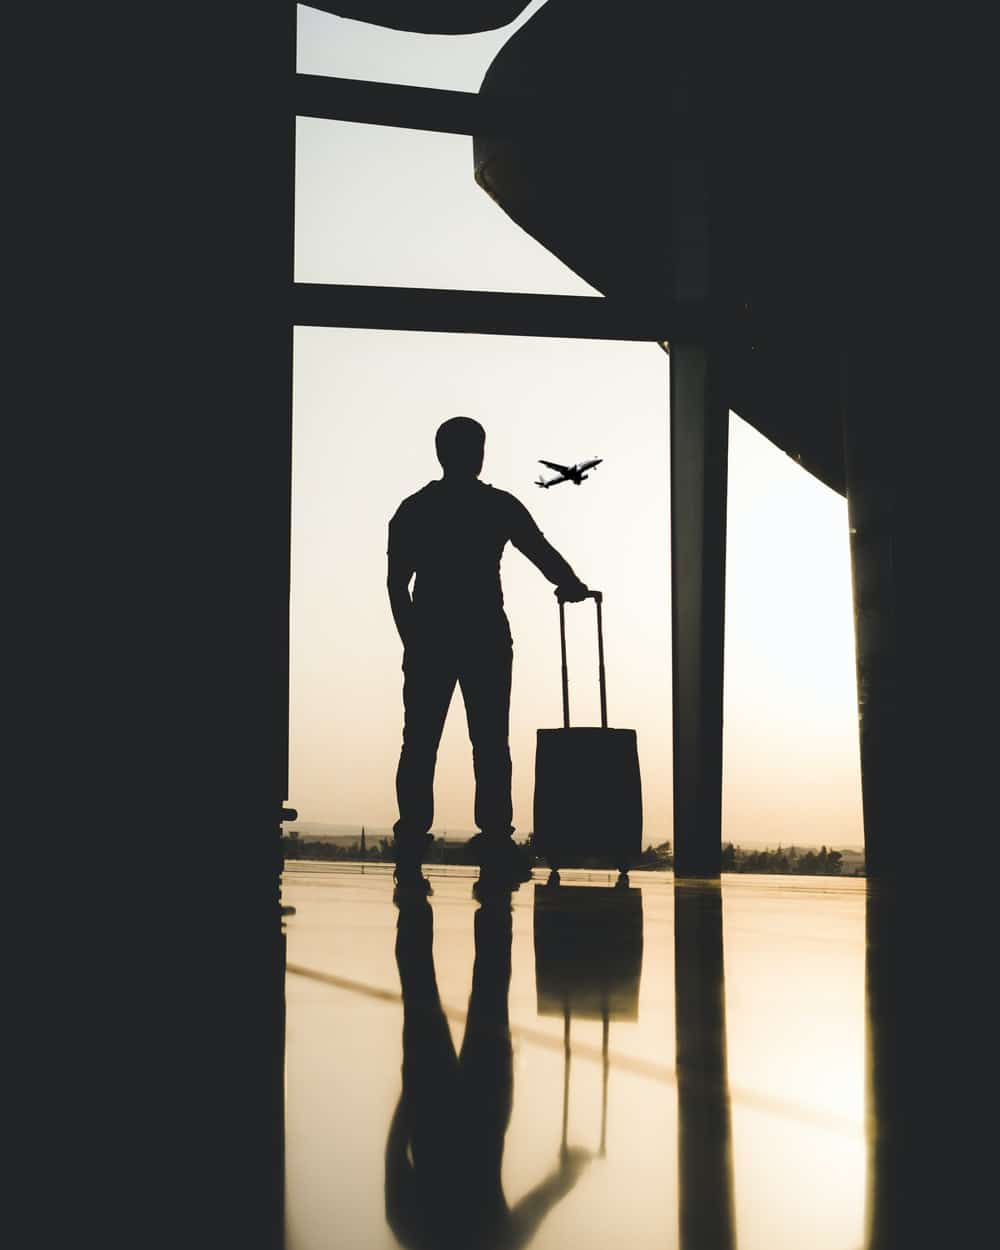 Man stands near airport window with briefcase